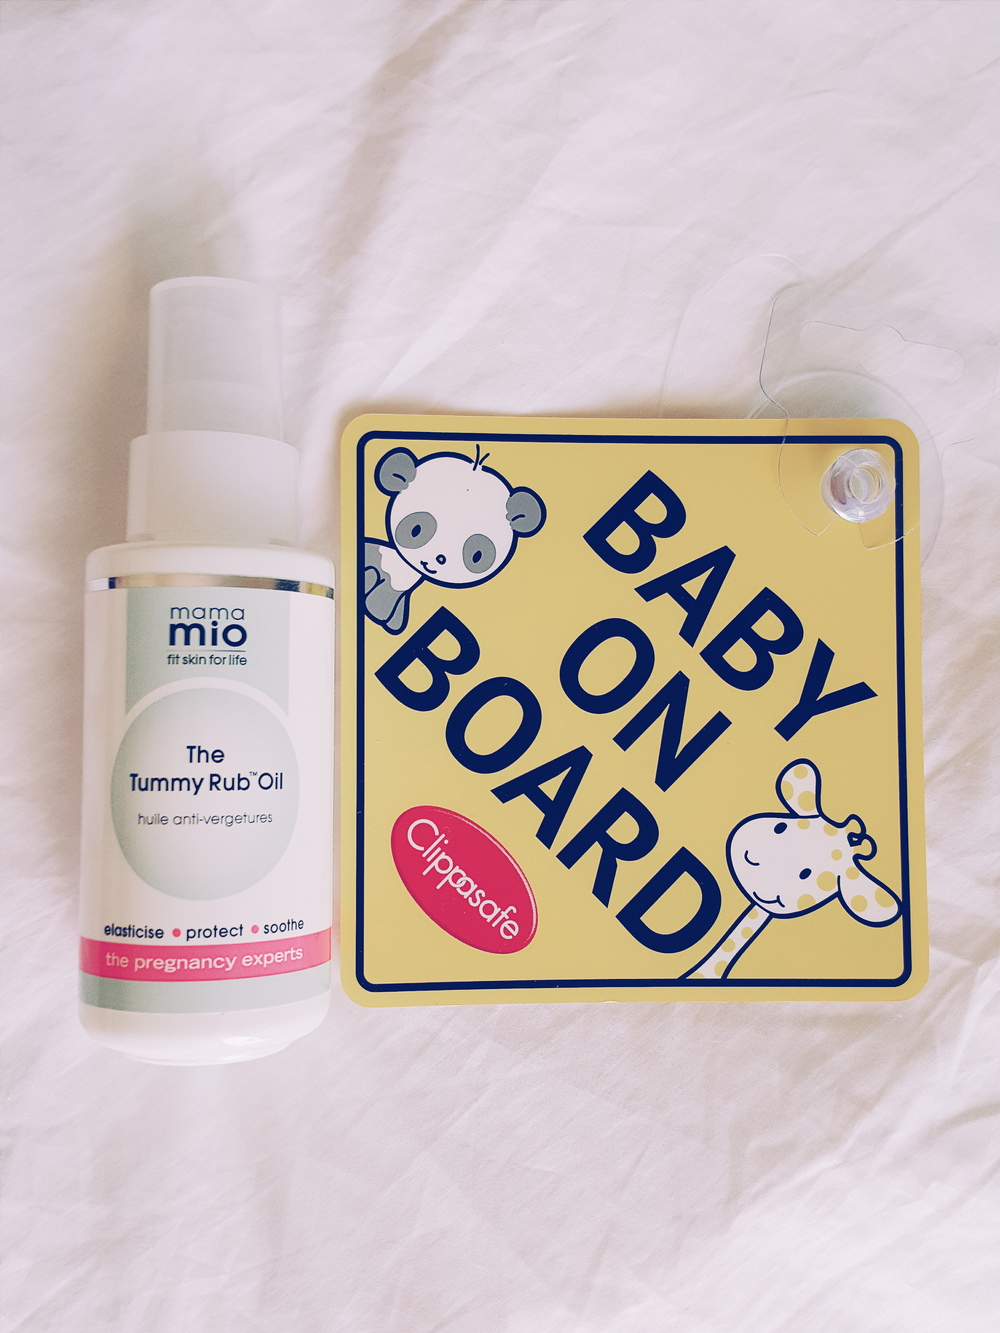 mama-mio-the-tummy-rub-oil